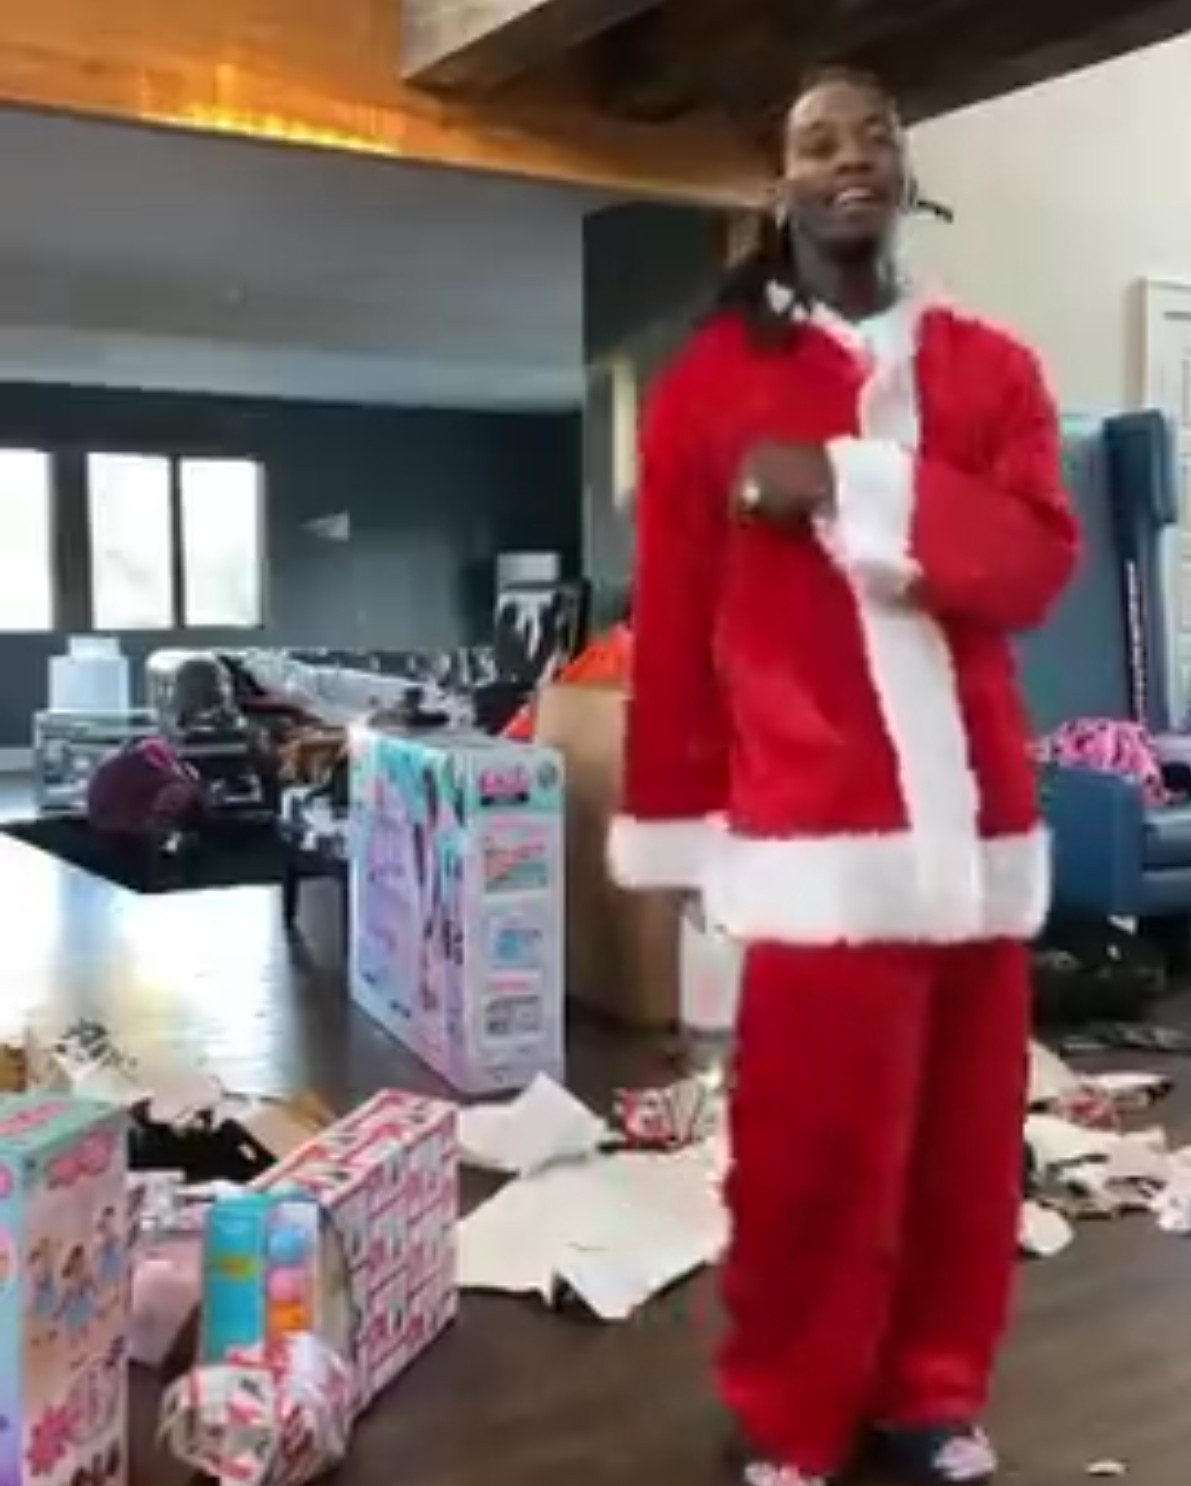 Offset Dancing Around In Santa Costume (2)